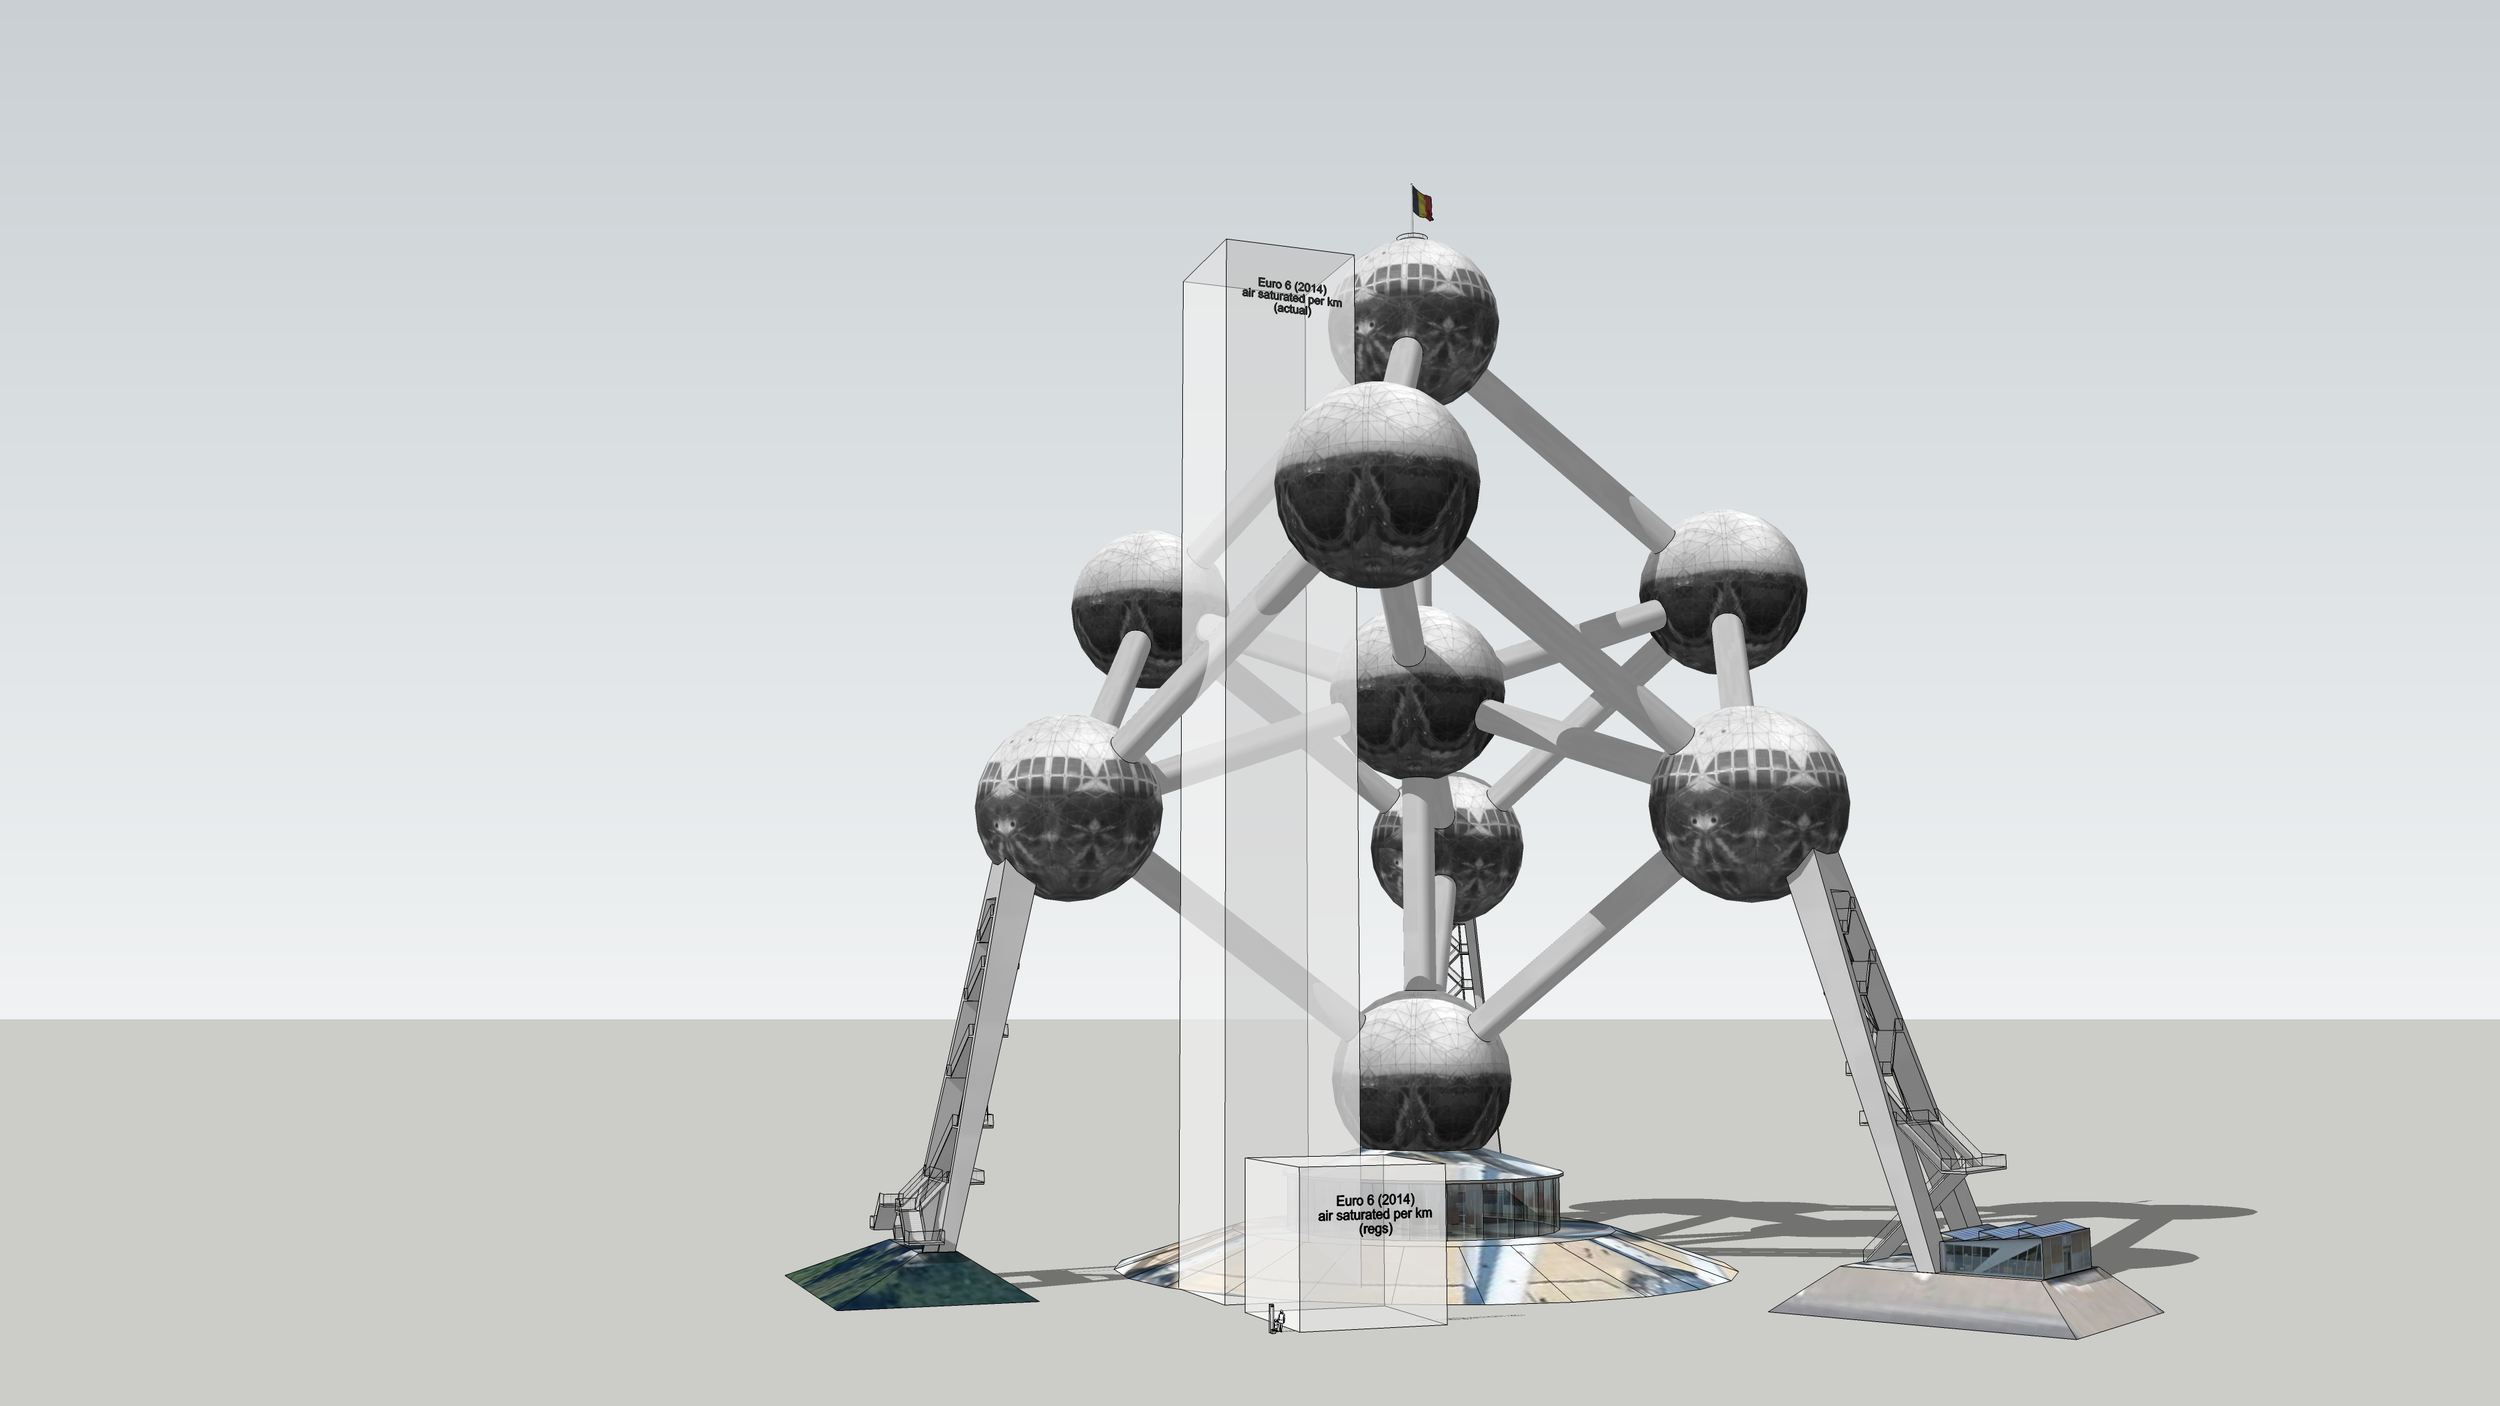 Saturation per km with a scaling object (Atomium)